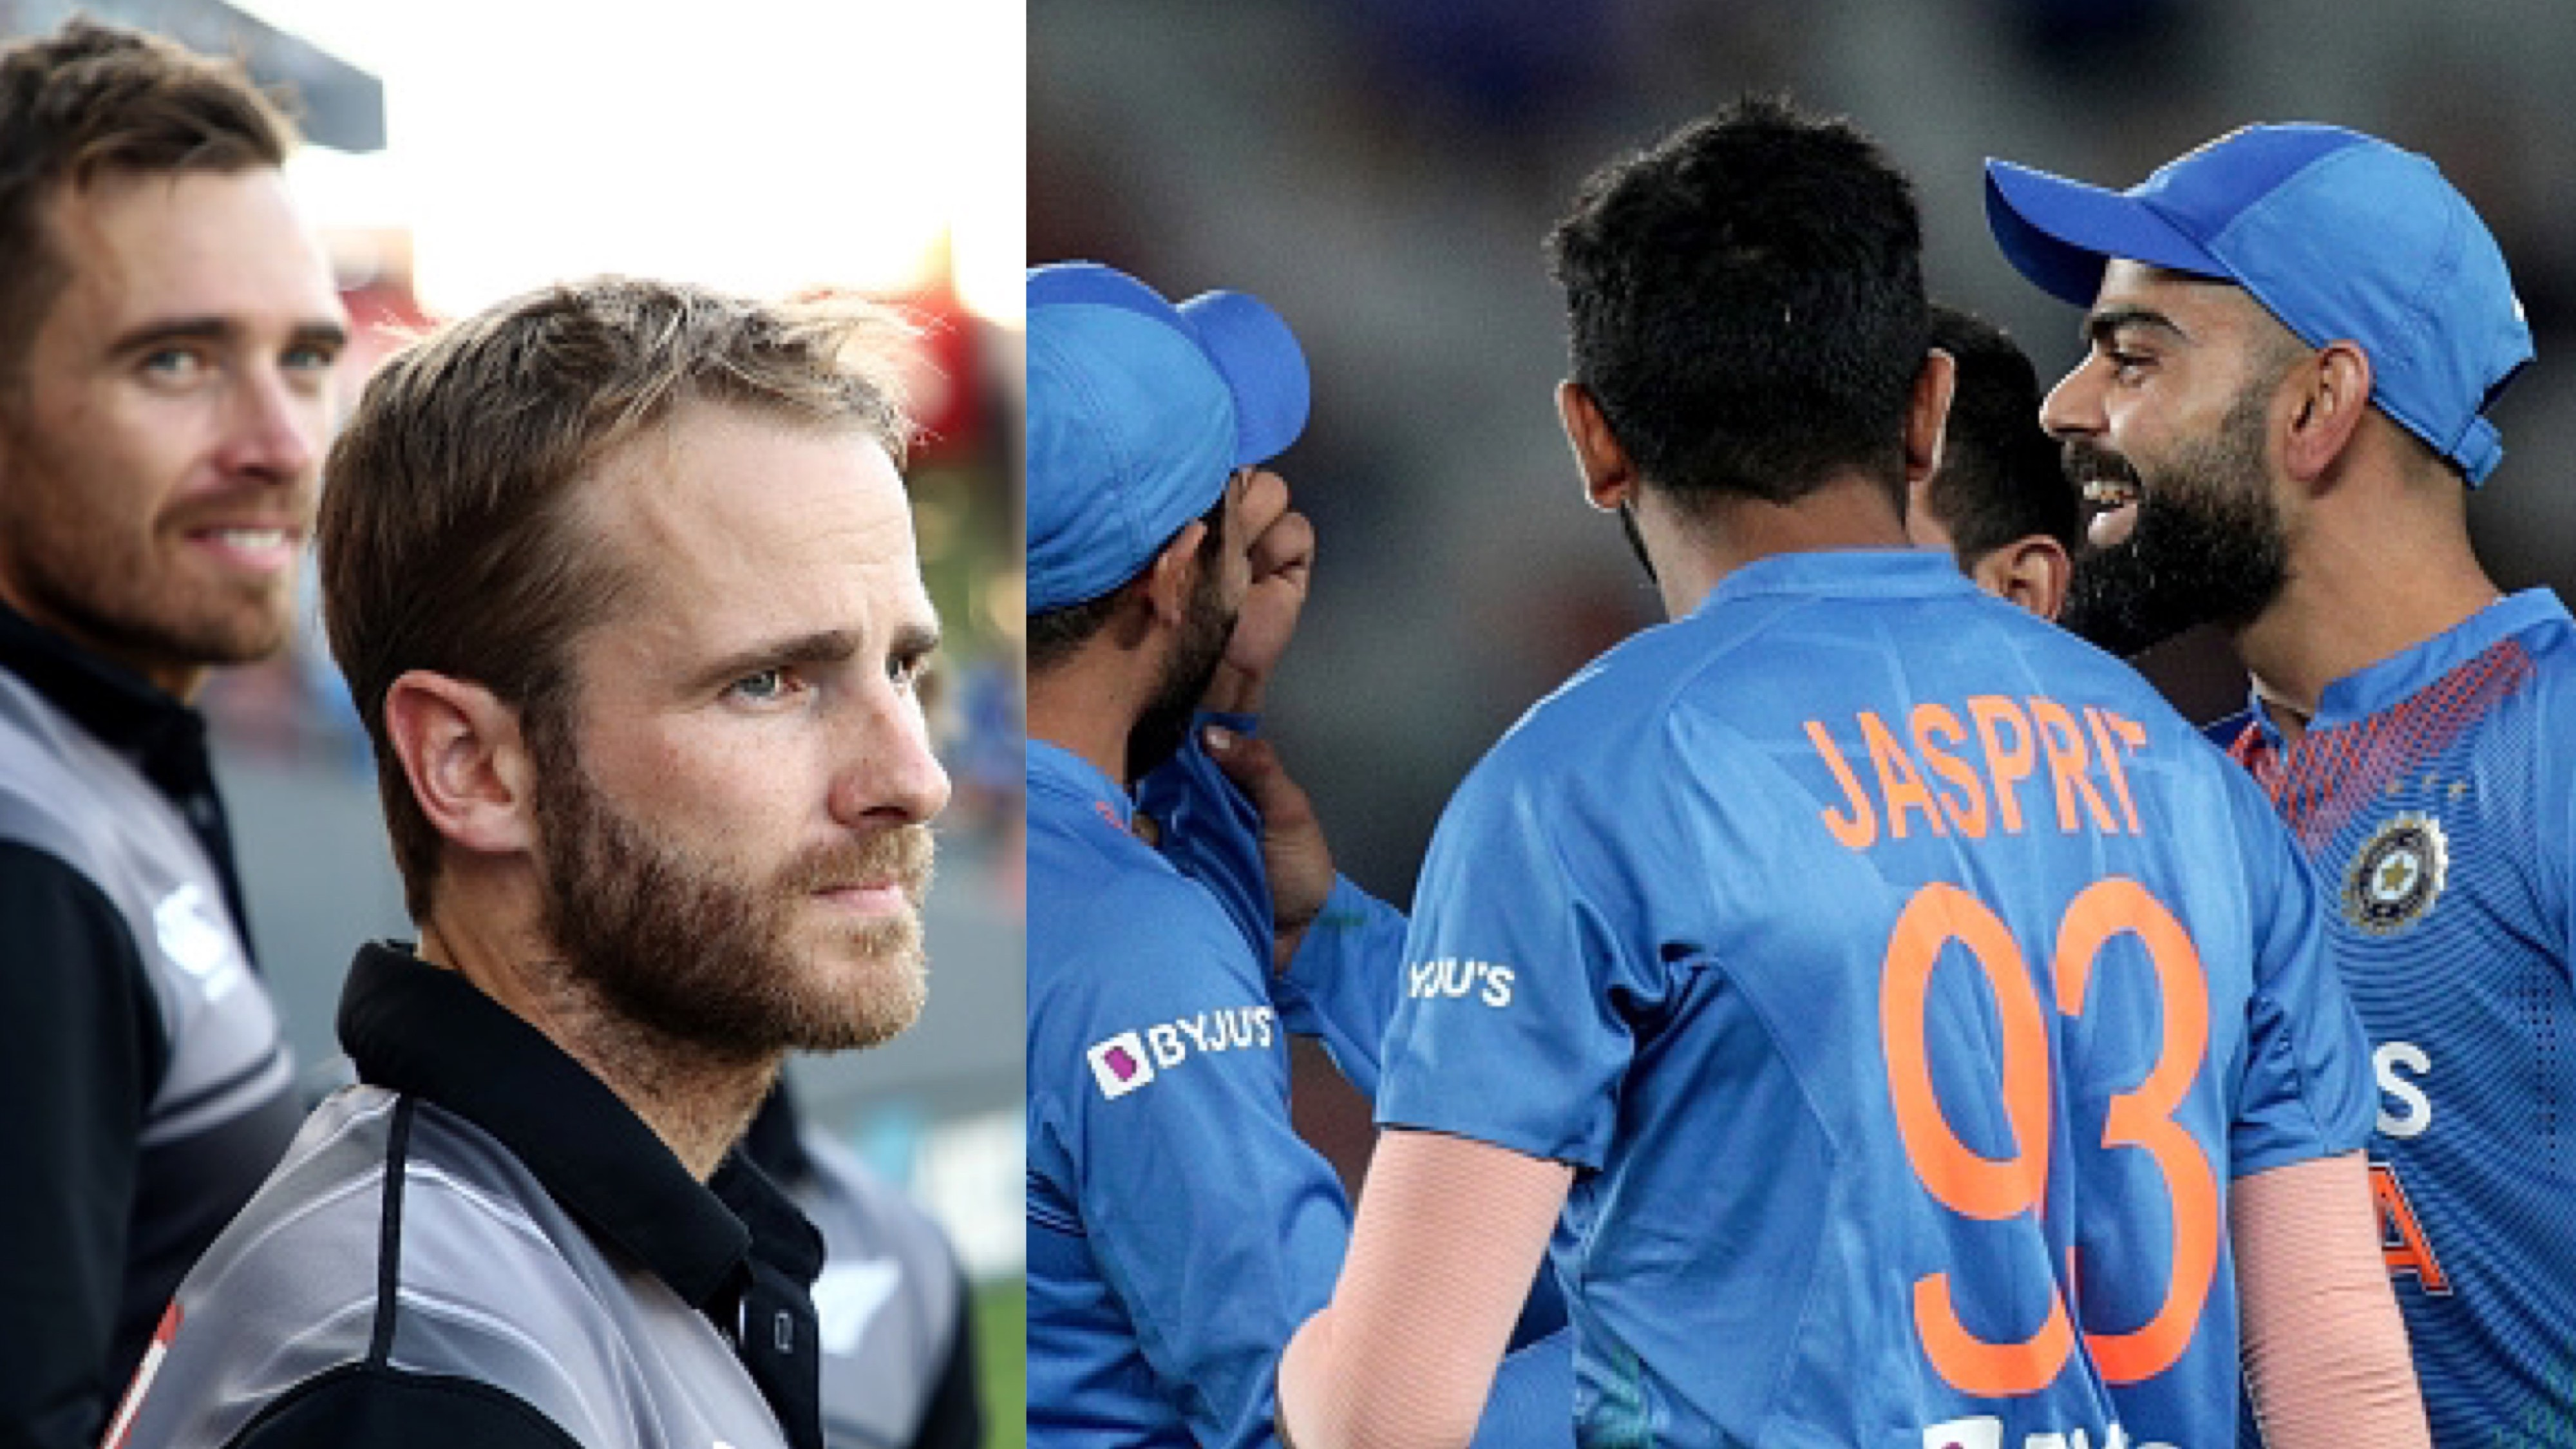 NZ v IND 2020: Kane Williamson credits Indian bowlers for restricting the hosts to a low score